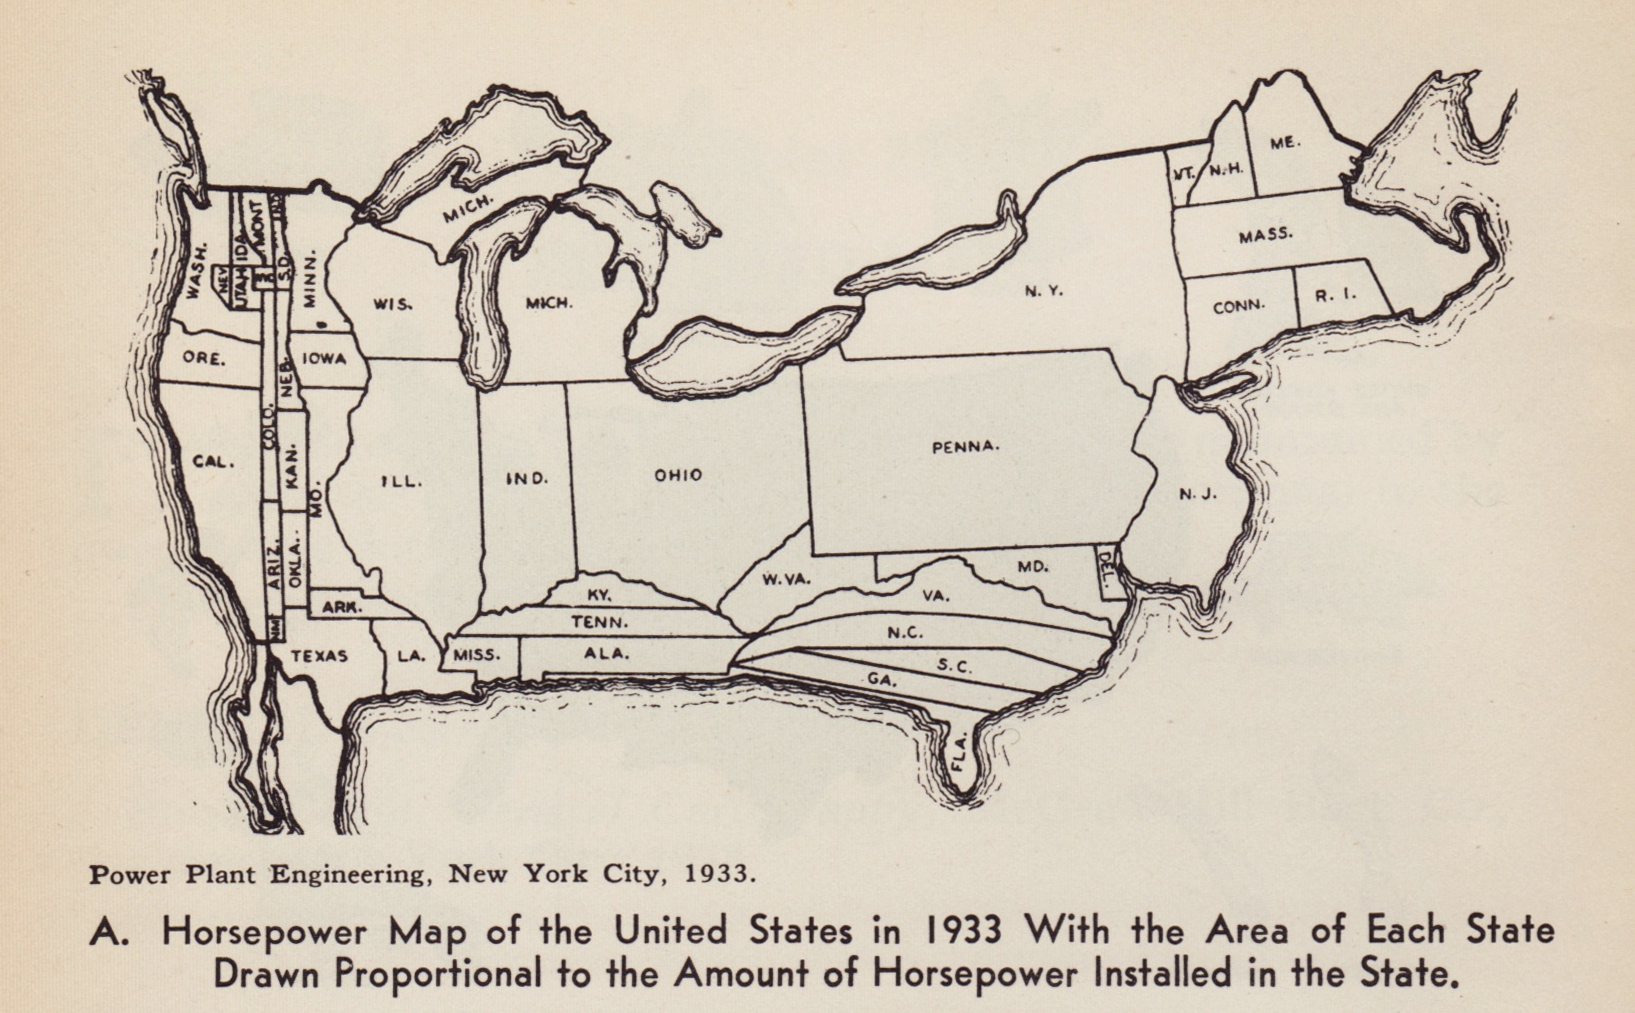 cartogram 1933 horsepower map of the united states